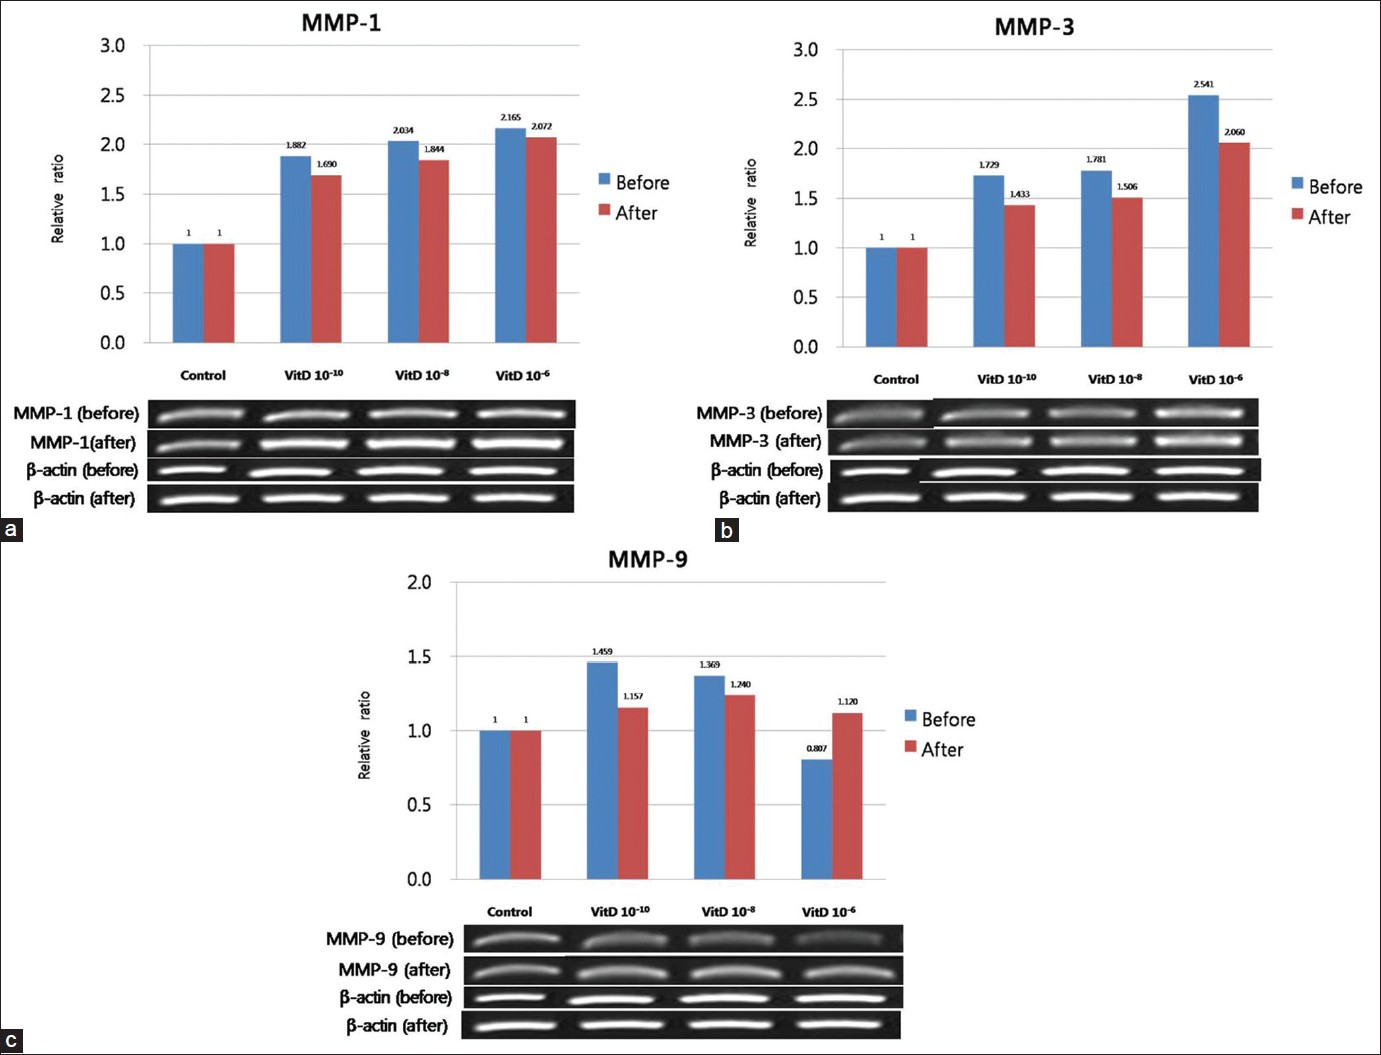 Figure 6: Effect of VDR siRNA on the gene expression of MMP-1 (a), MMP-3 (b), and MMP-9 (c) in cultured sebocytes after treatment with vitamin D